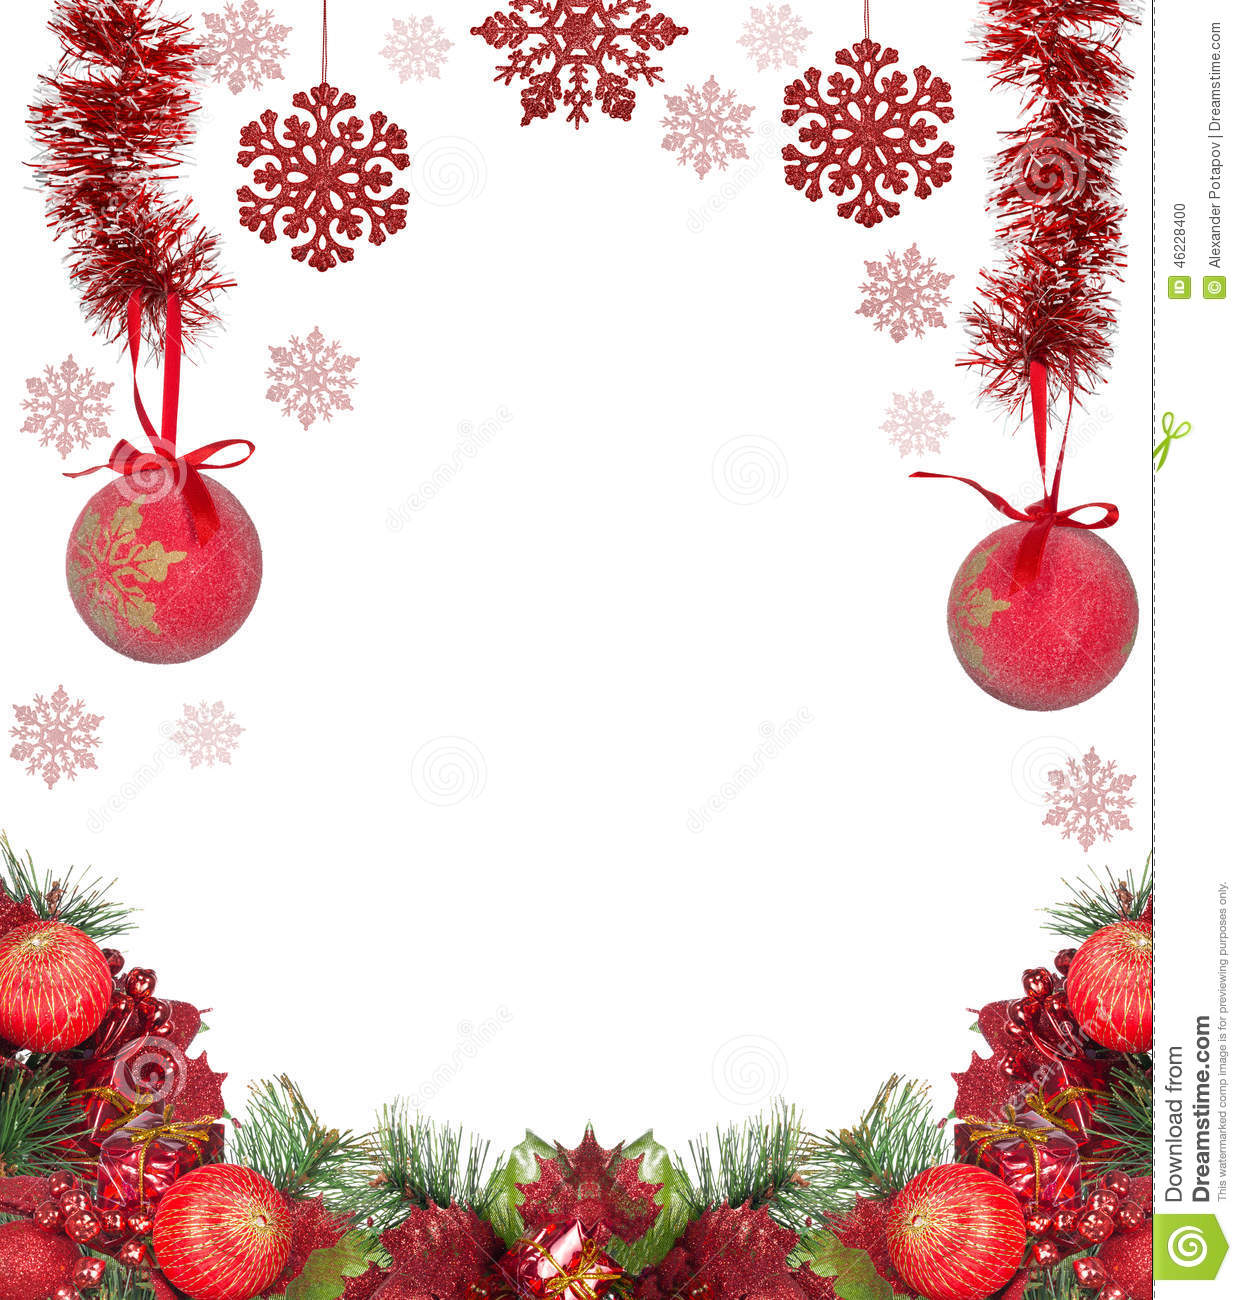 Red and white christmas decorations - Frame From Red Christmas Decorations Isolated On White Stock Photo